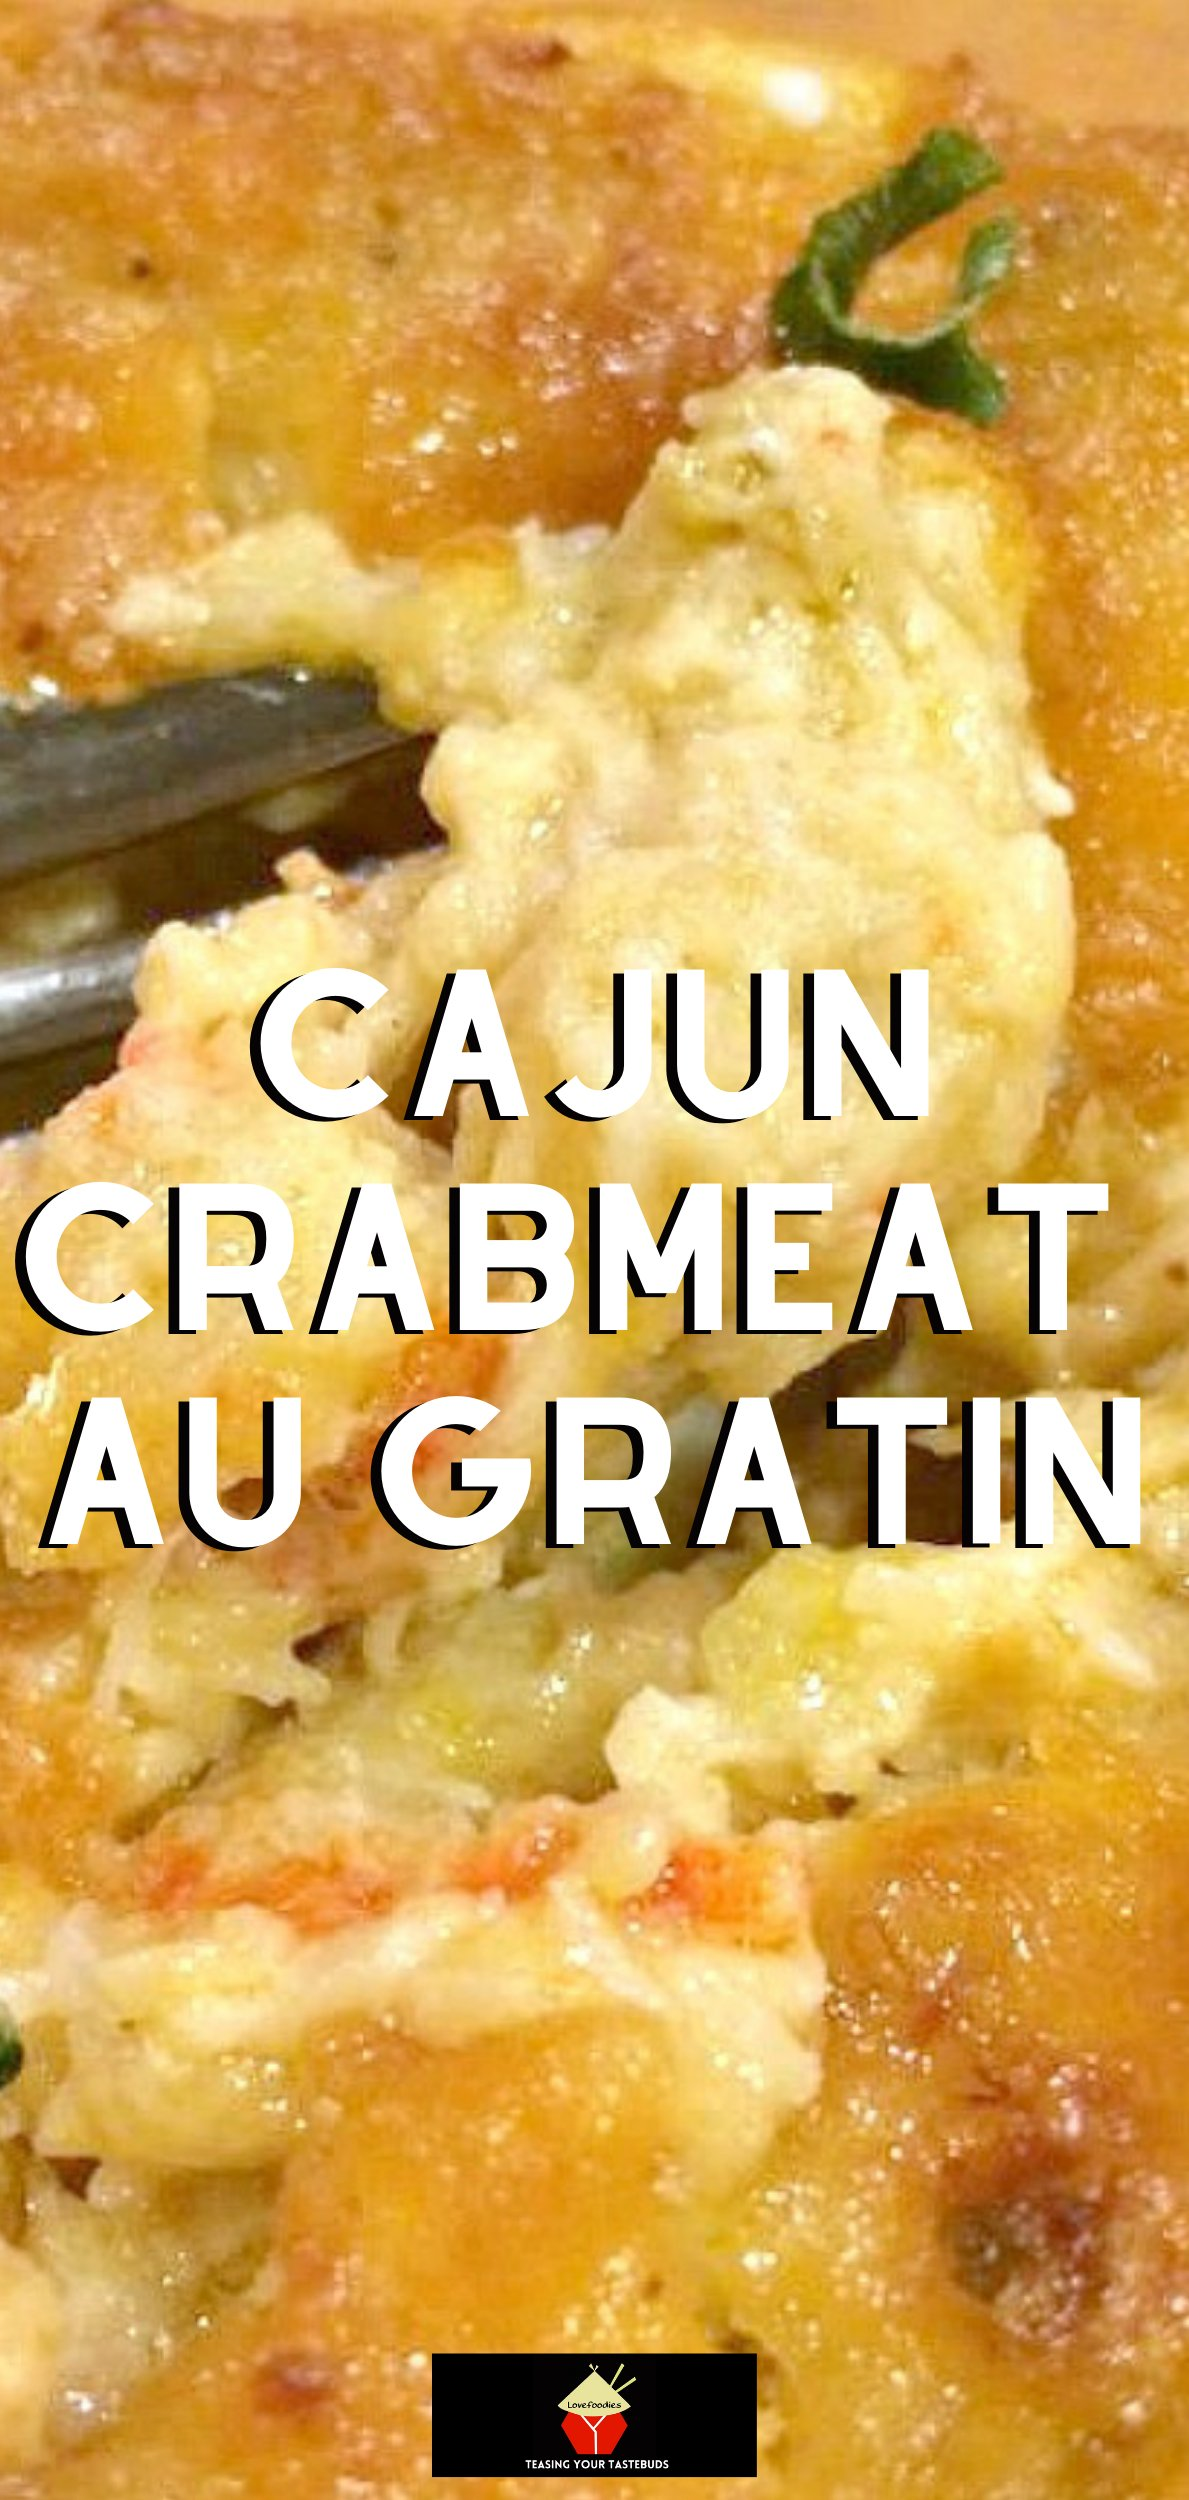 Cajun Crabmeat Au Gratin. A truly delicious recipe full of fantastic flavors. Options to add shrimp or crawfish too! Delicious served as an appetizer or main meal.